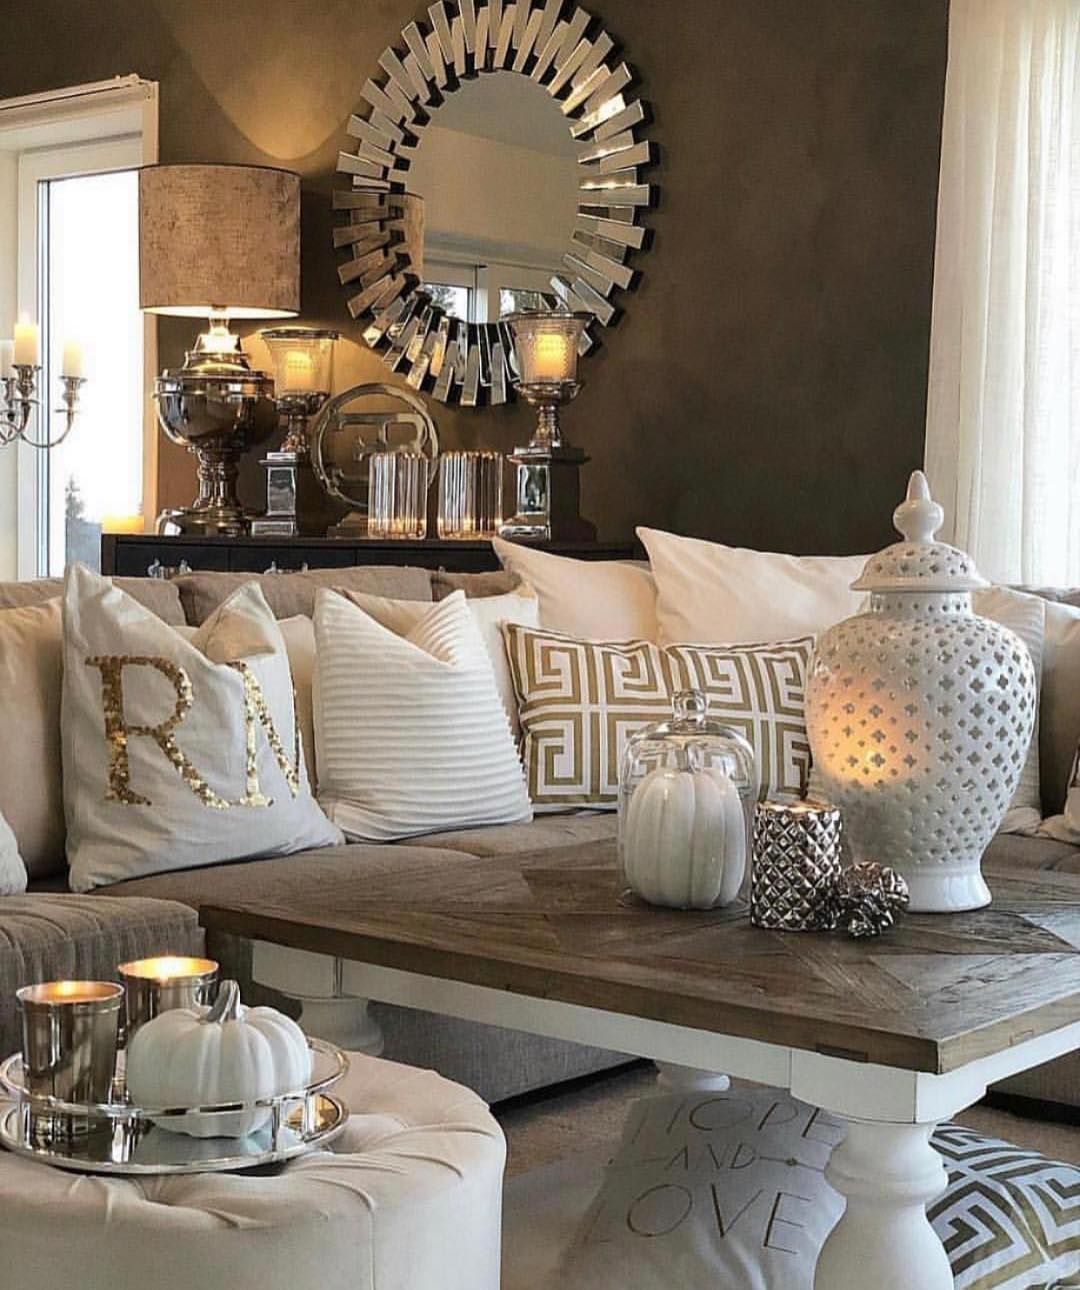 Pin By Stephanie Sims On مجلس حريم In 2020 Home Decor Interior Interior Design